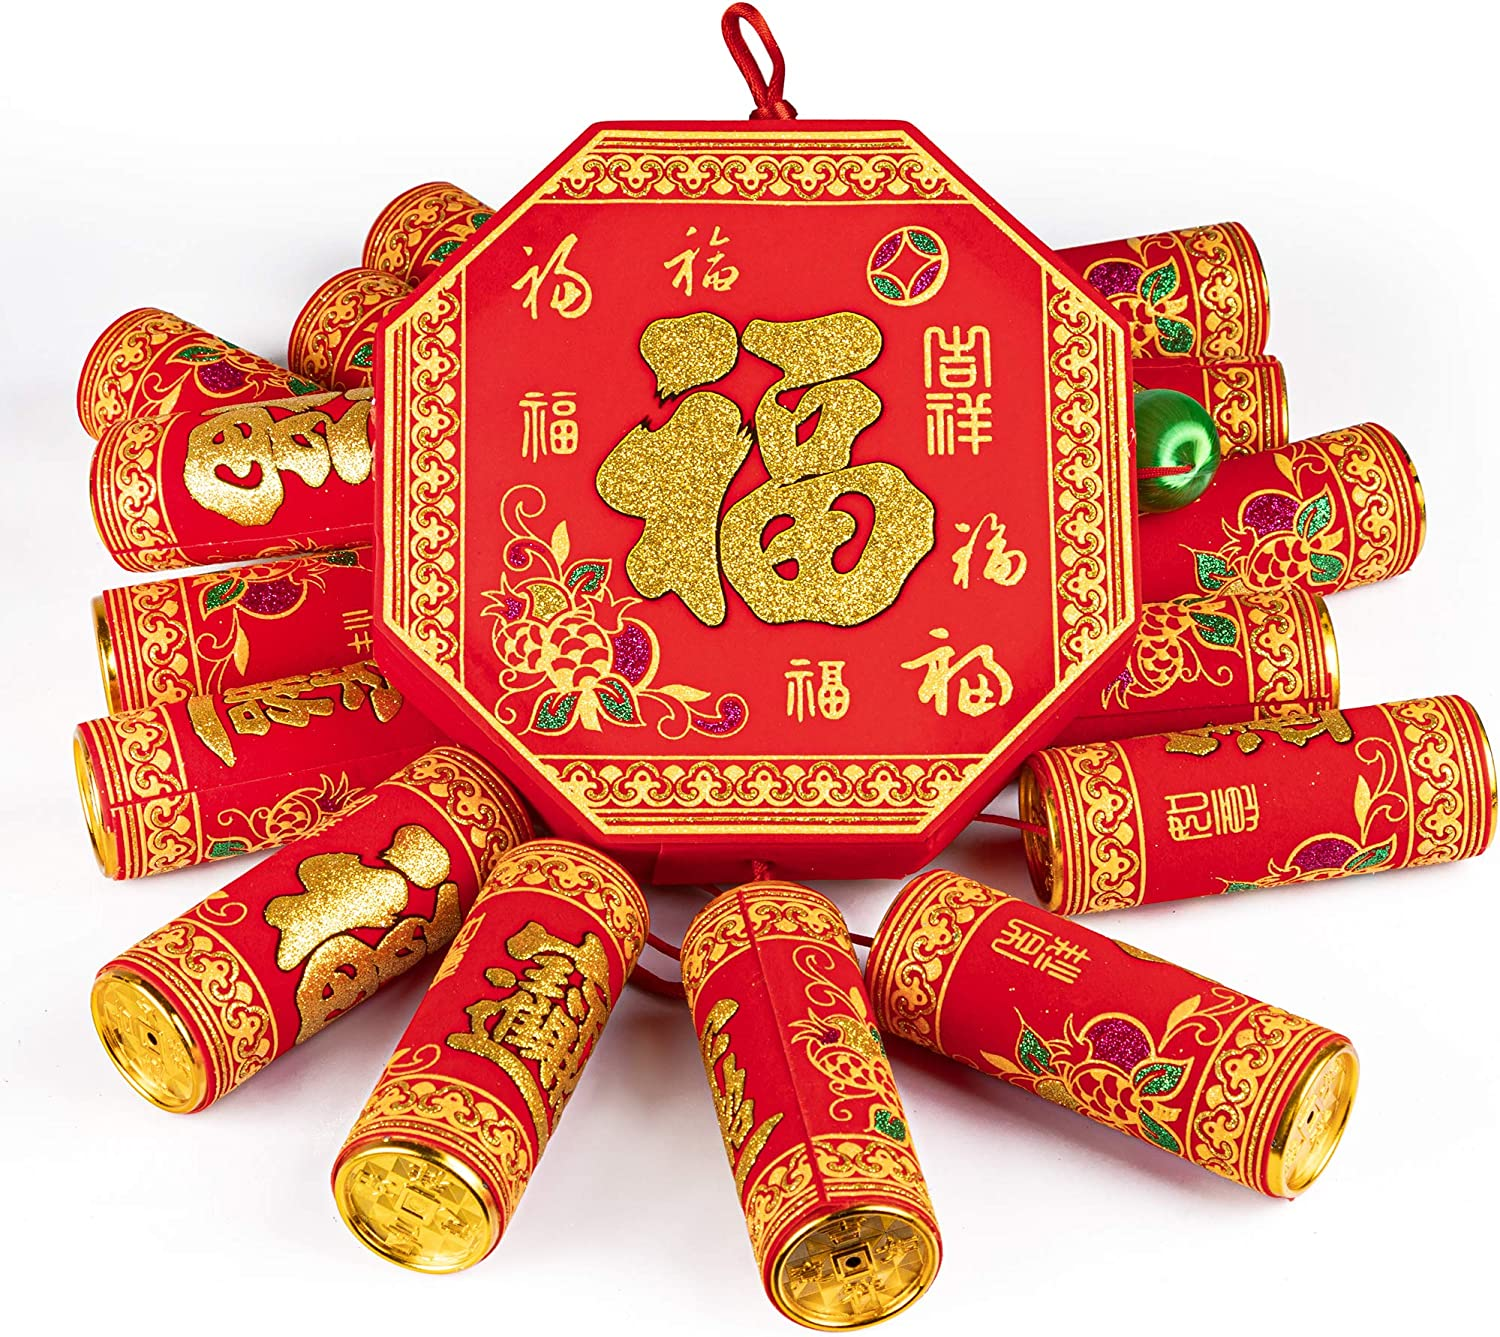 KI Store Chinese New Year Hanging Decorations Large Firecracker Decor Traditional Red Lucky Oriental Pendant Ornaments for Spring Festival Lunar New Year Pack of 1